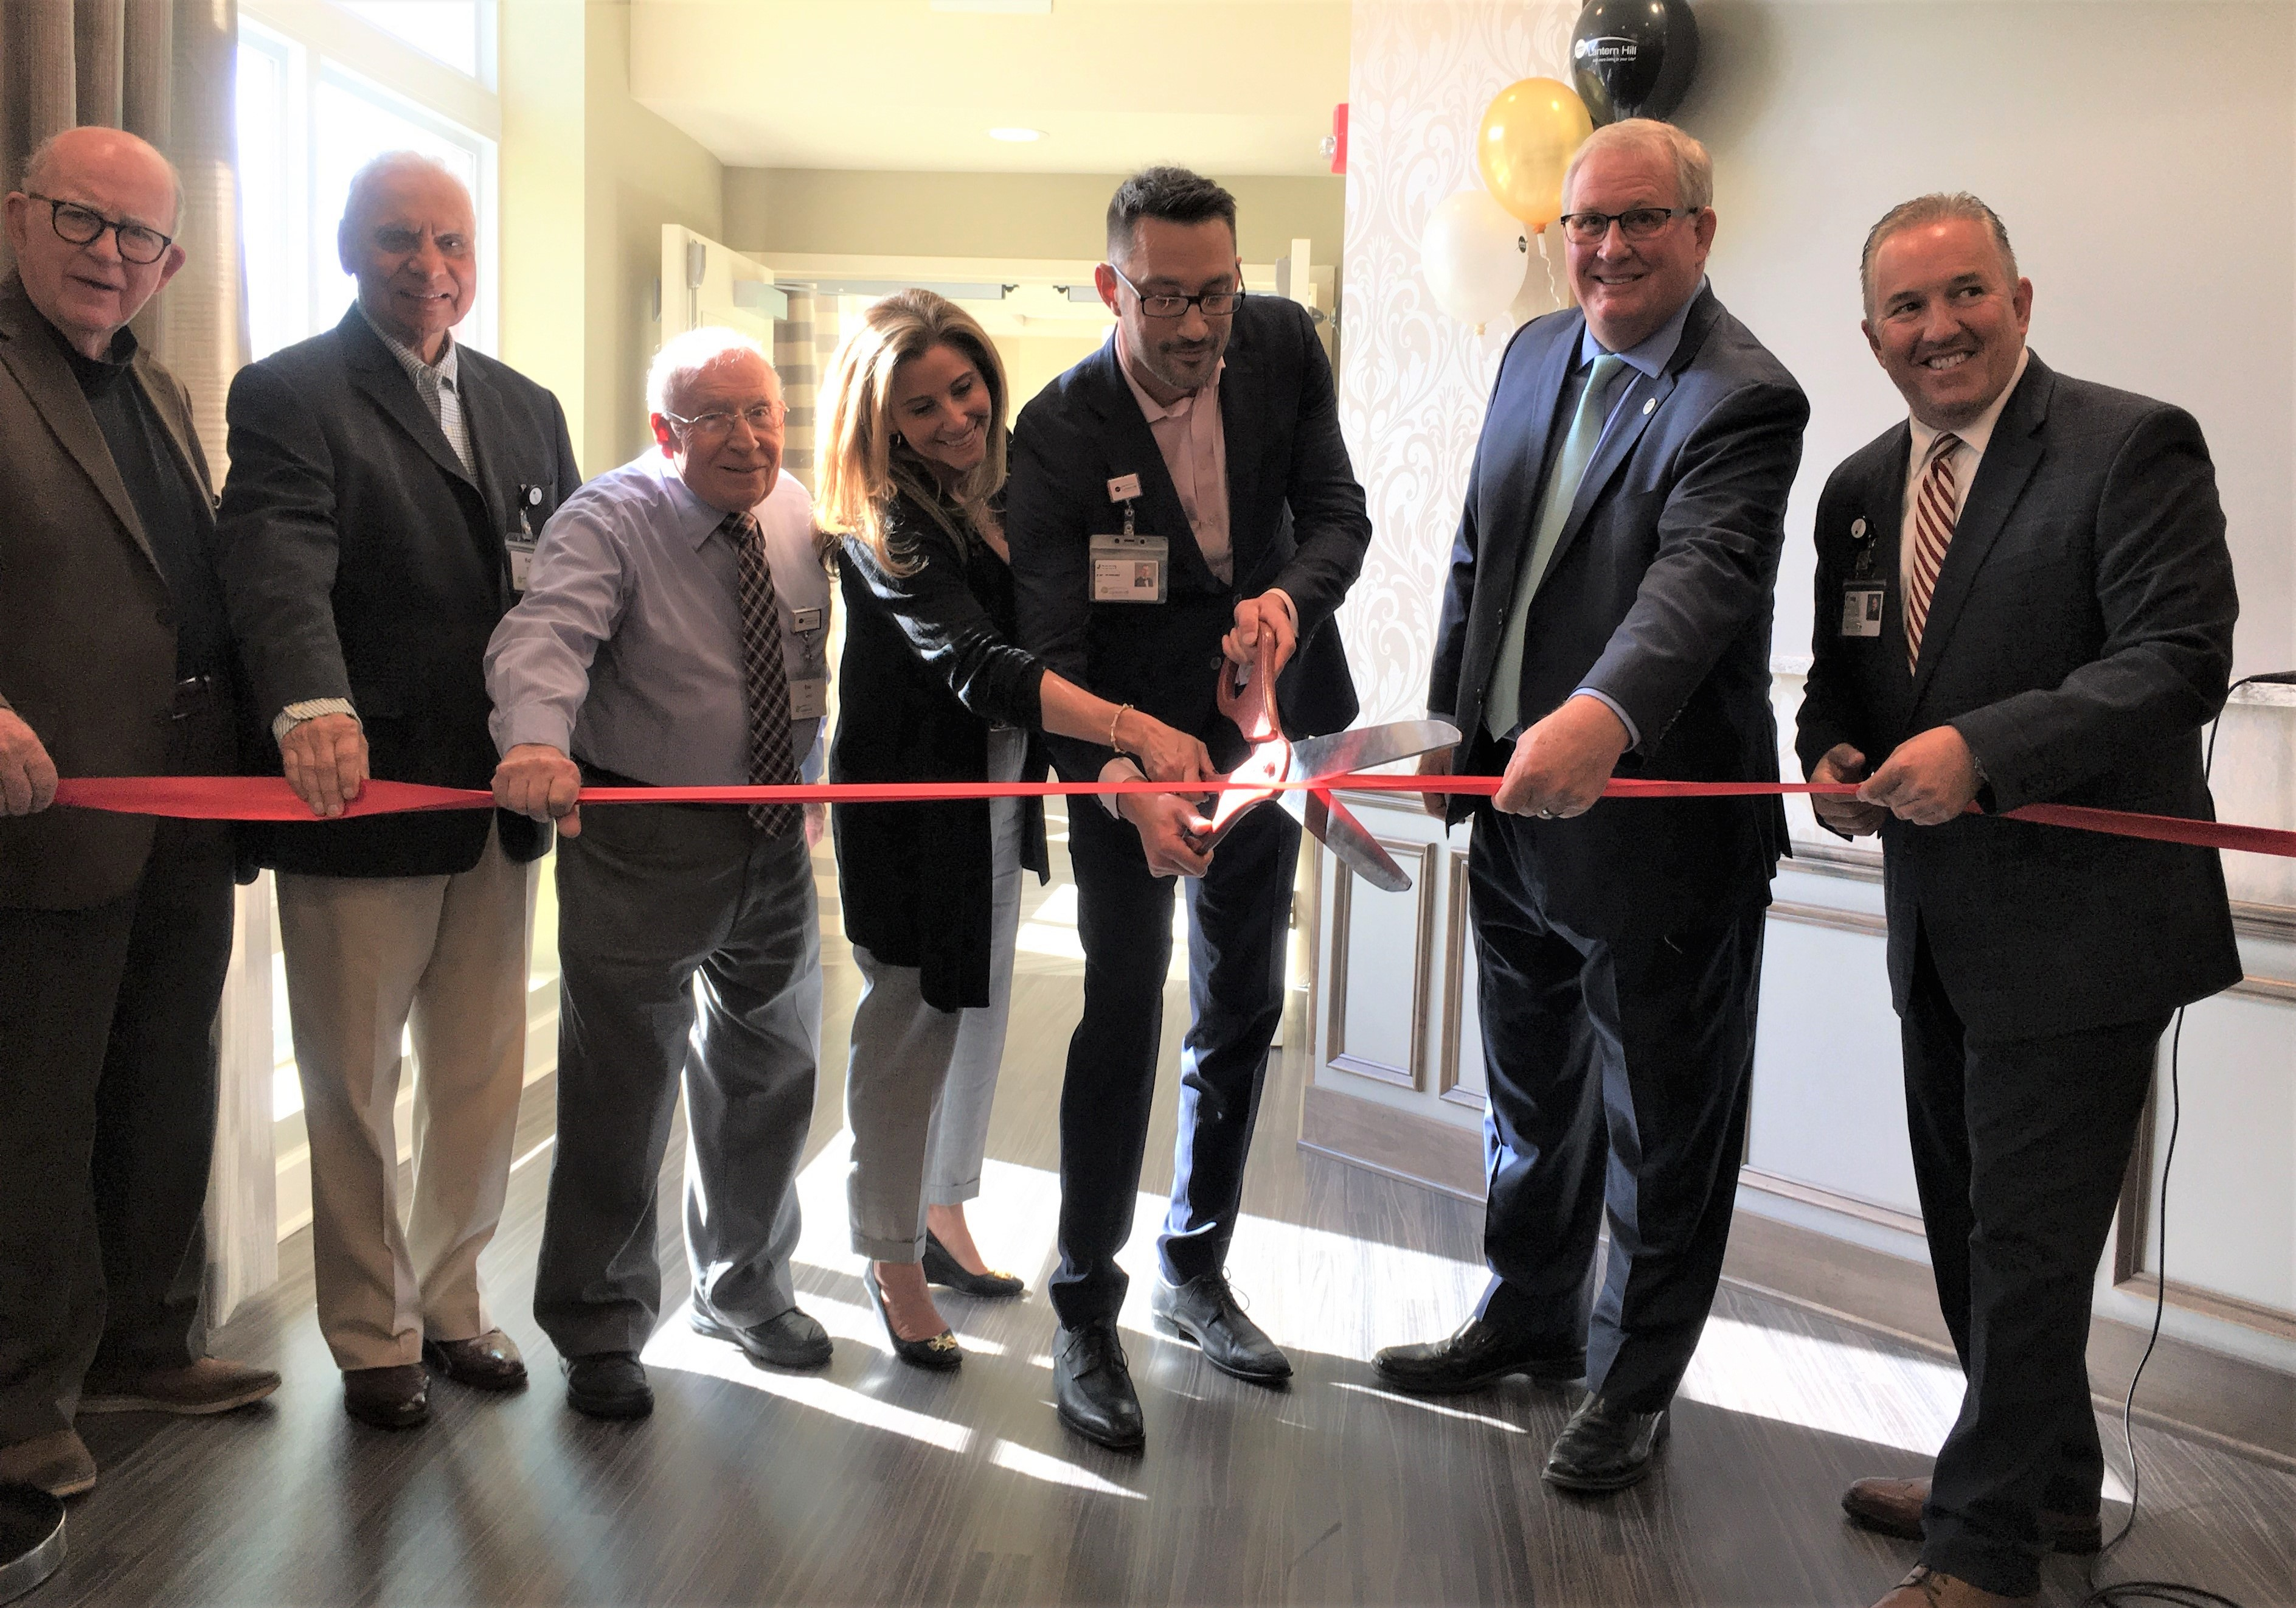 Lantern Hill staff and residents cut ribbon at Bistro 1720 opening